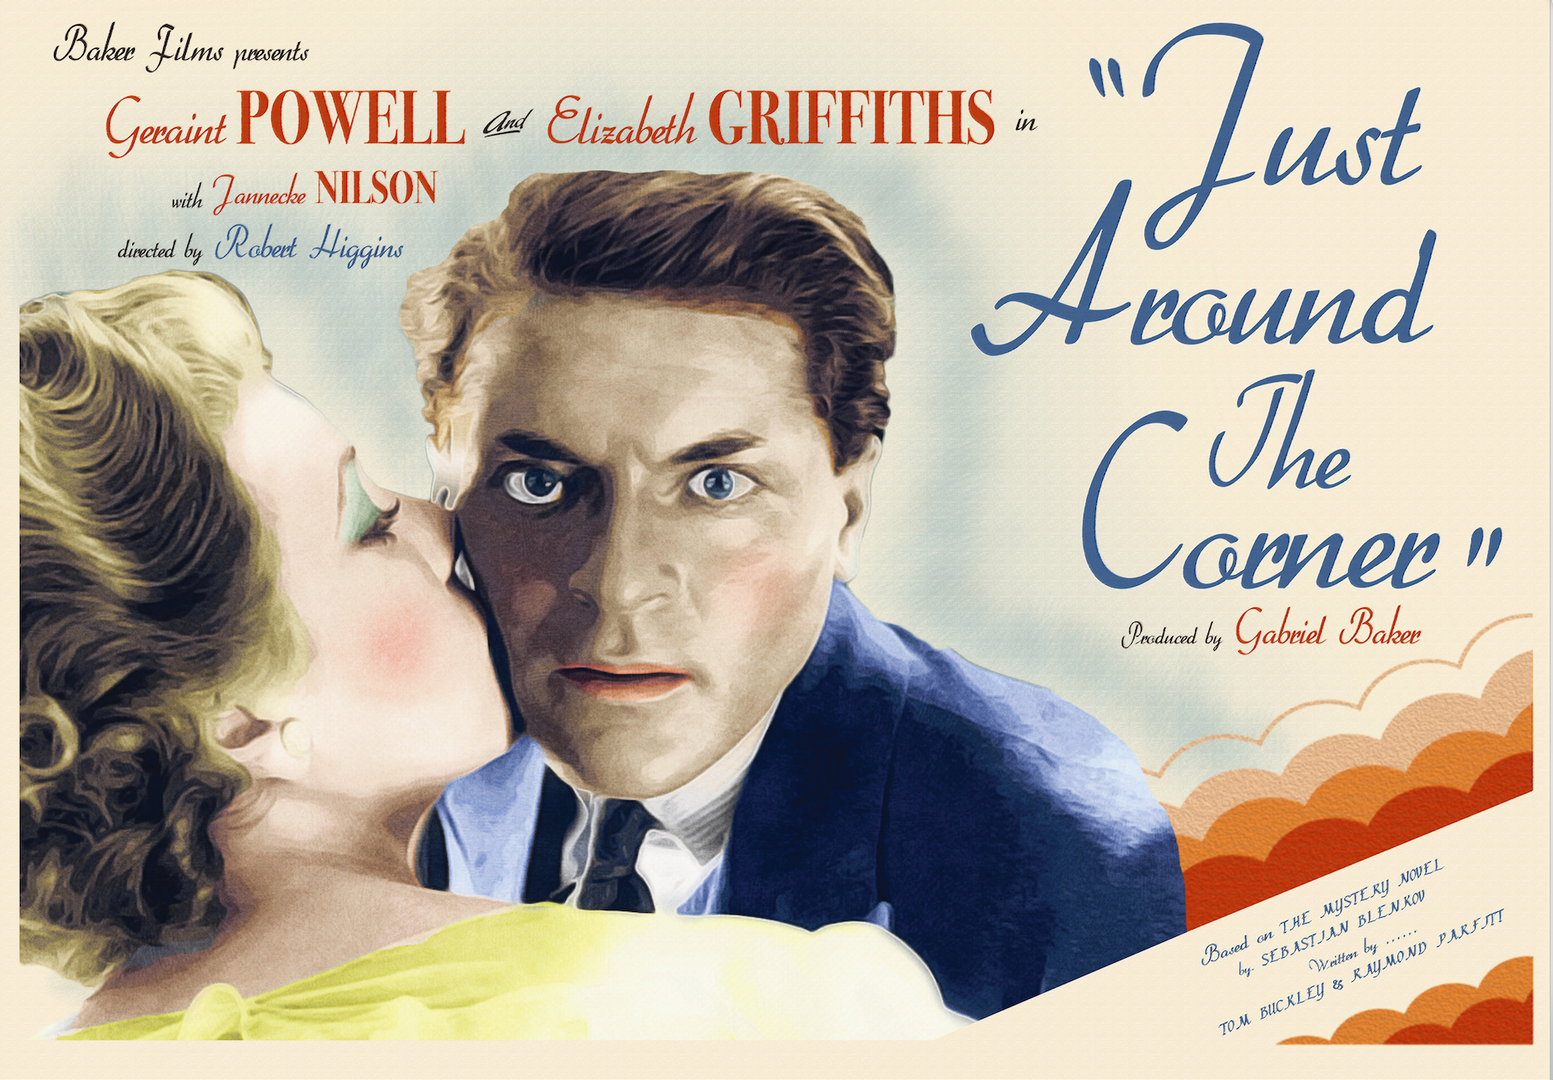 1940s Fictional Film Poster 8.png